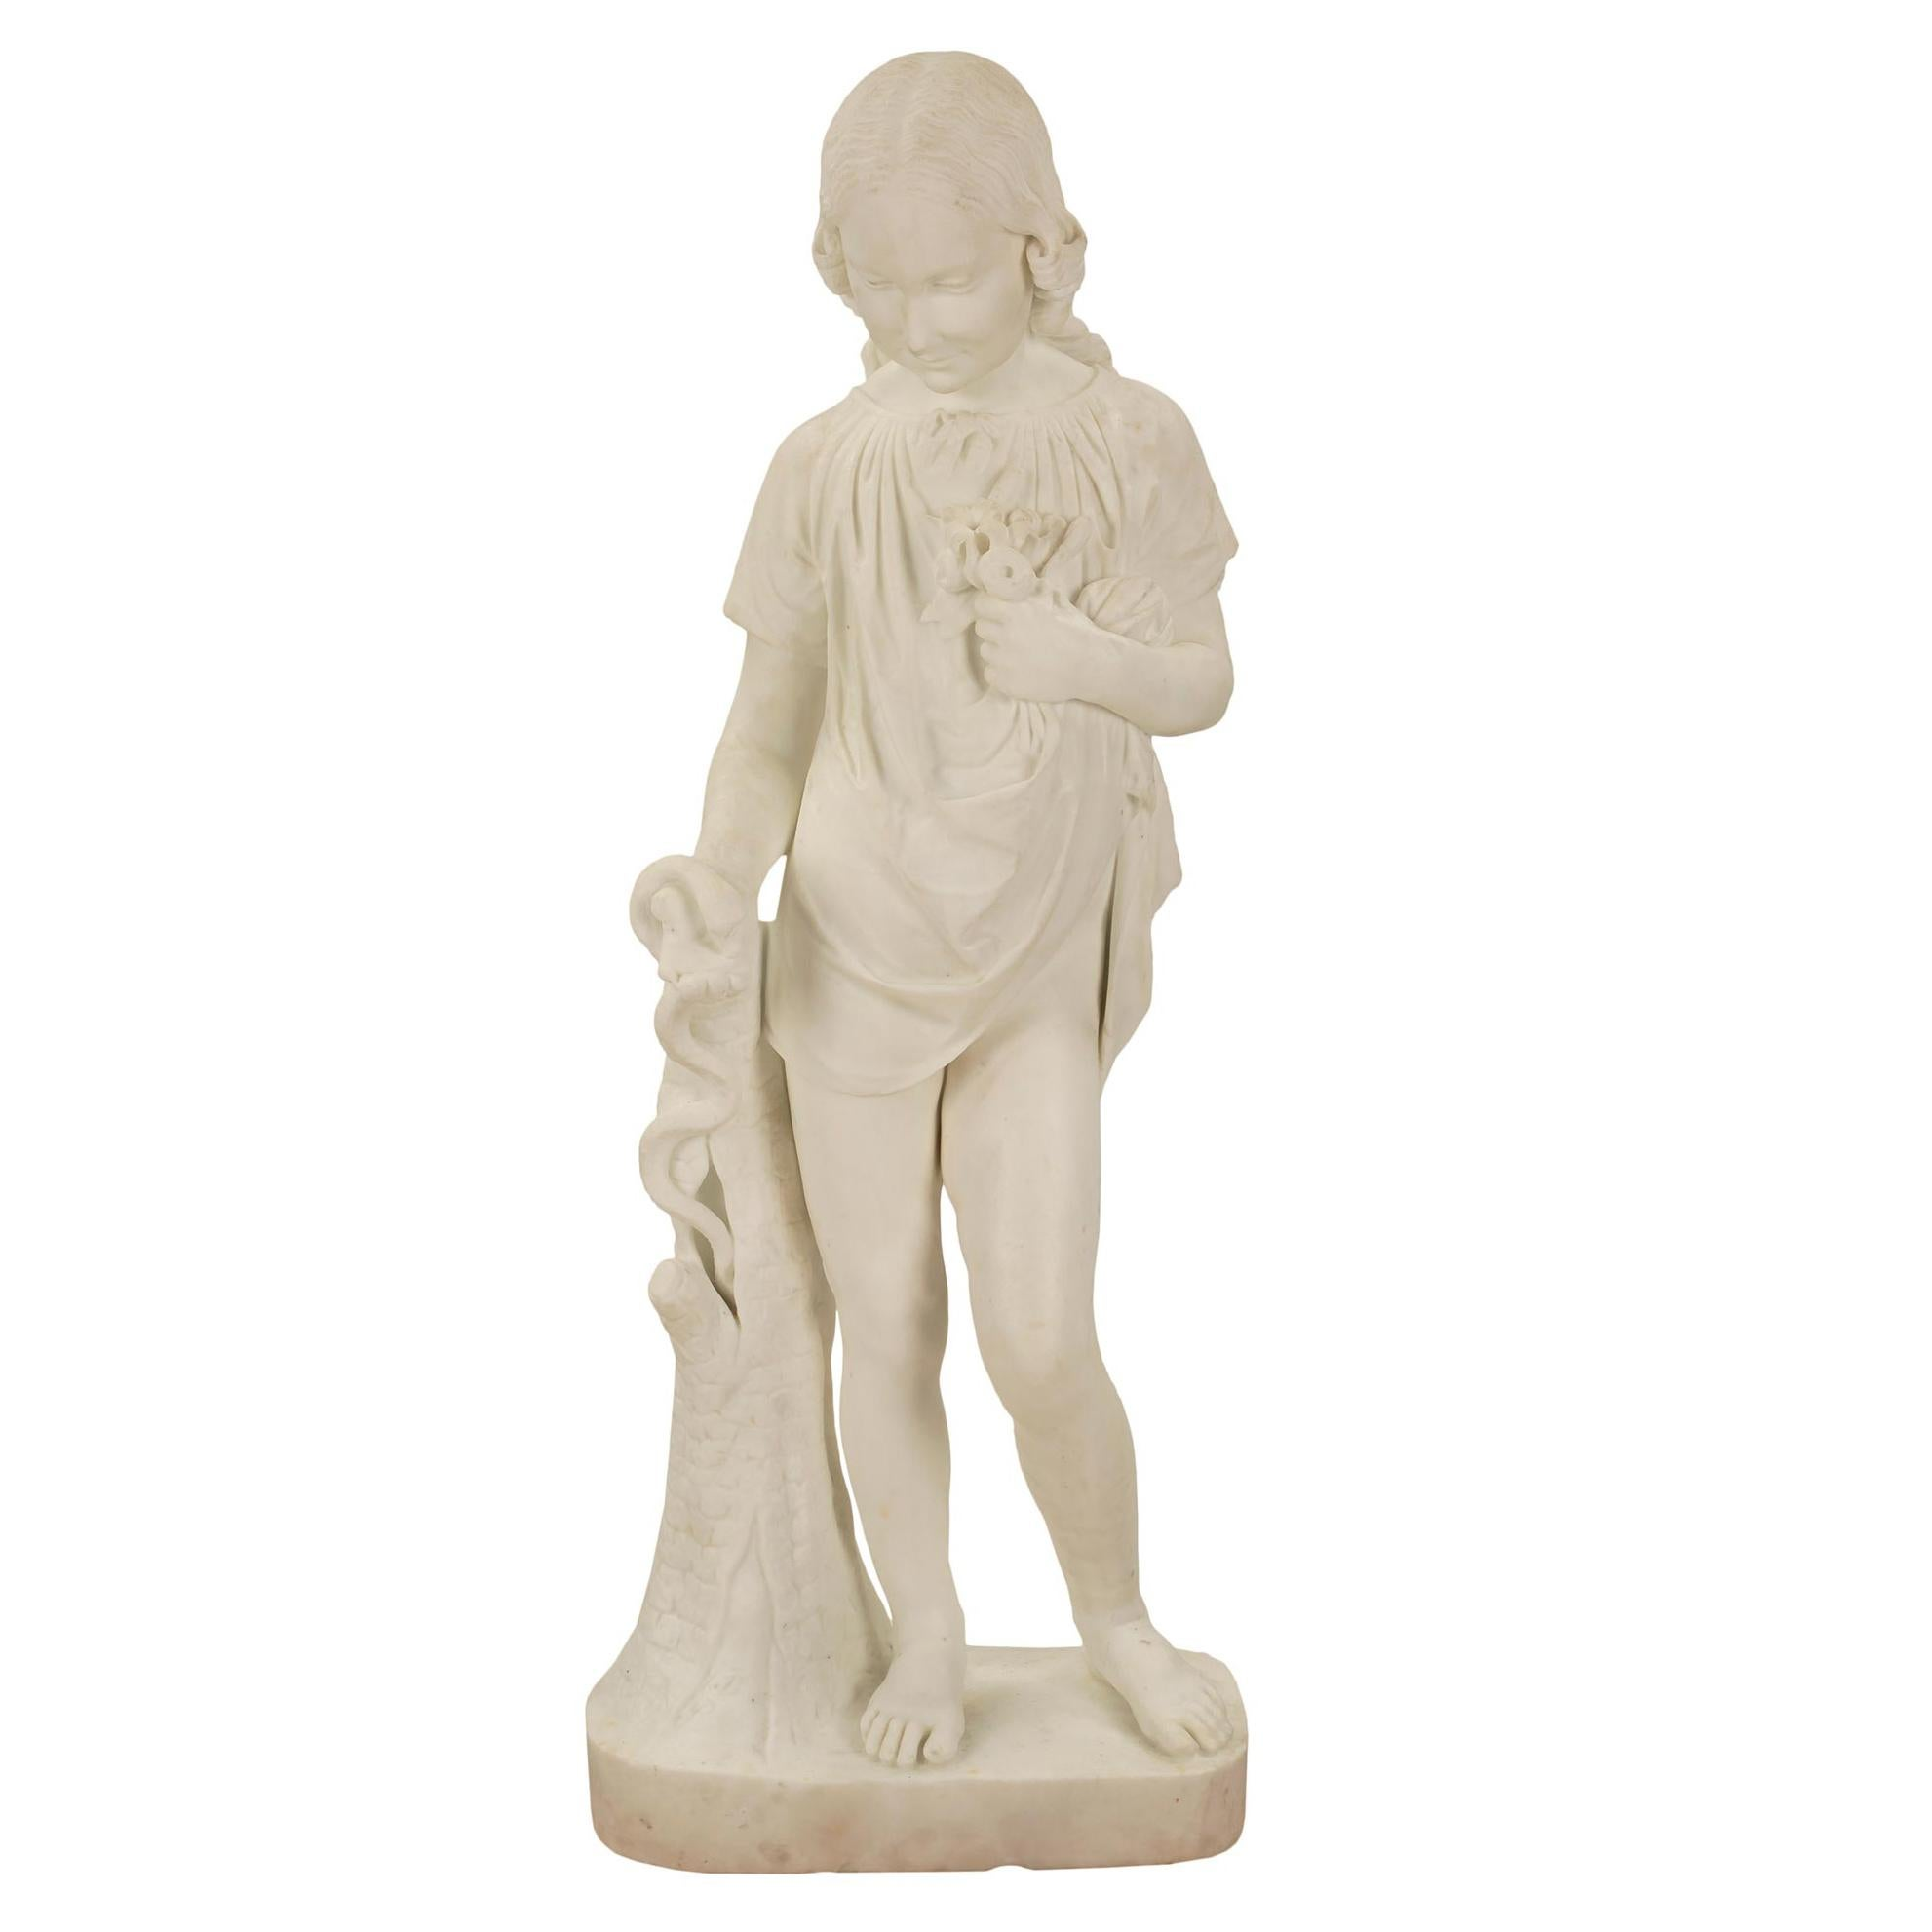 Italian 19th Century White Carrara Marble Statue of a Young Girl and Serpent